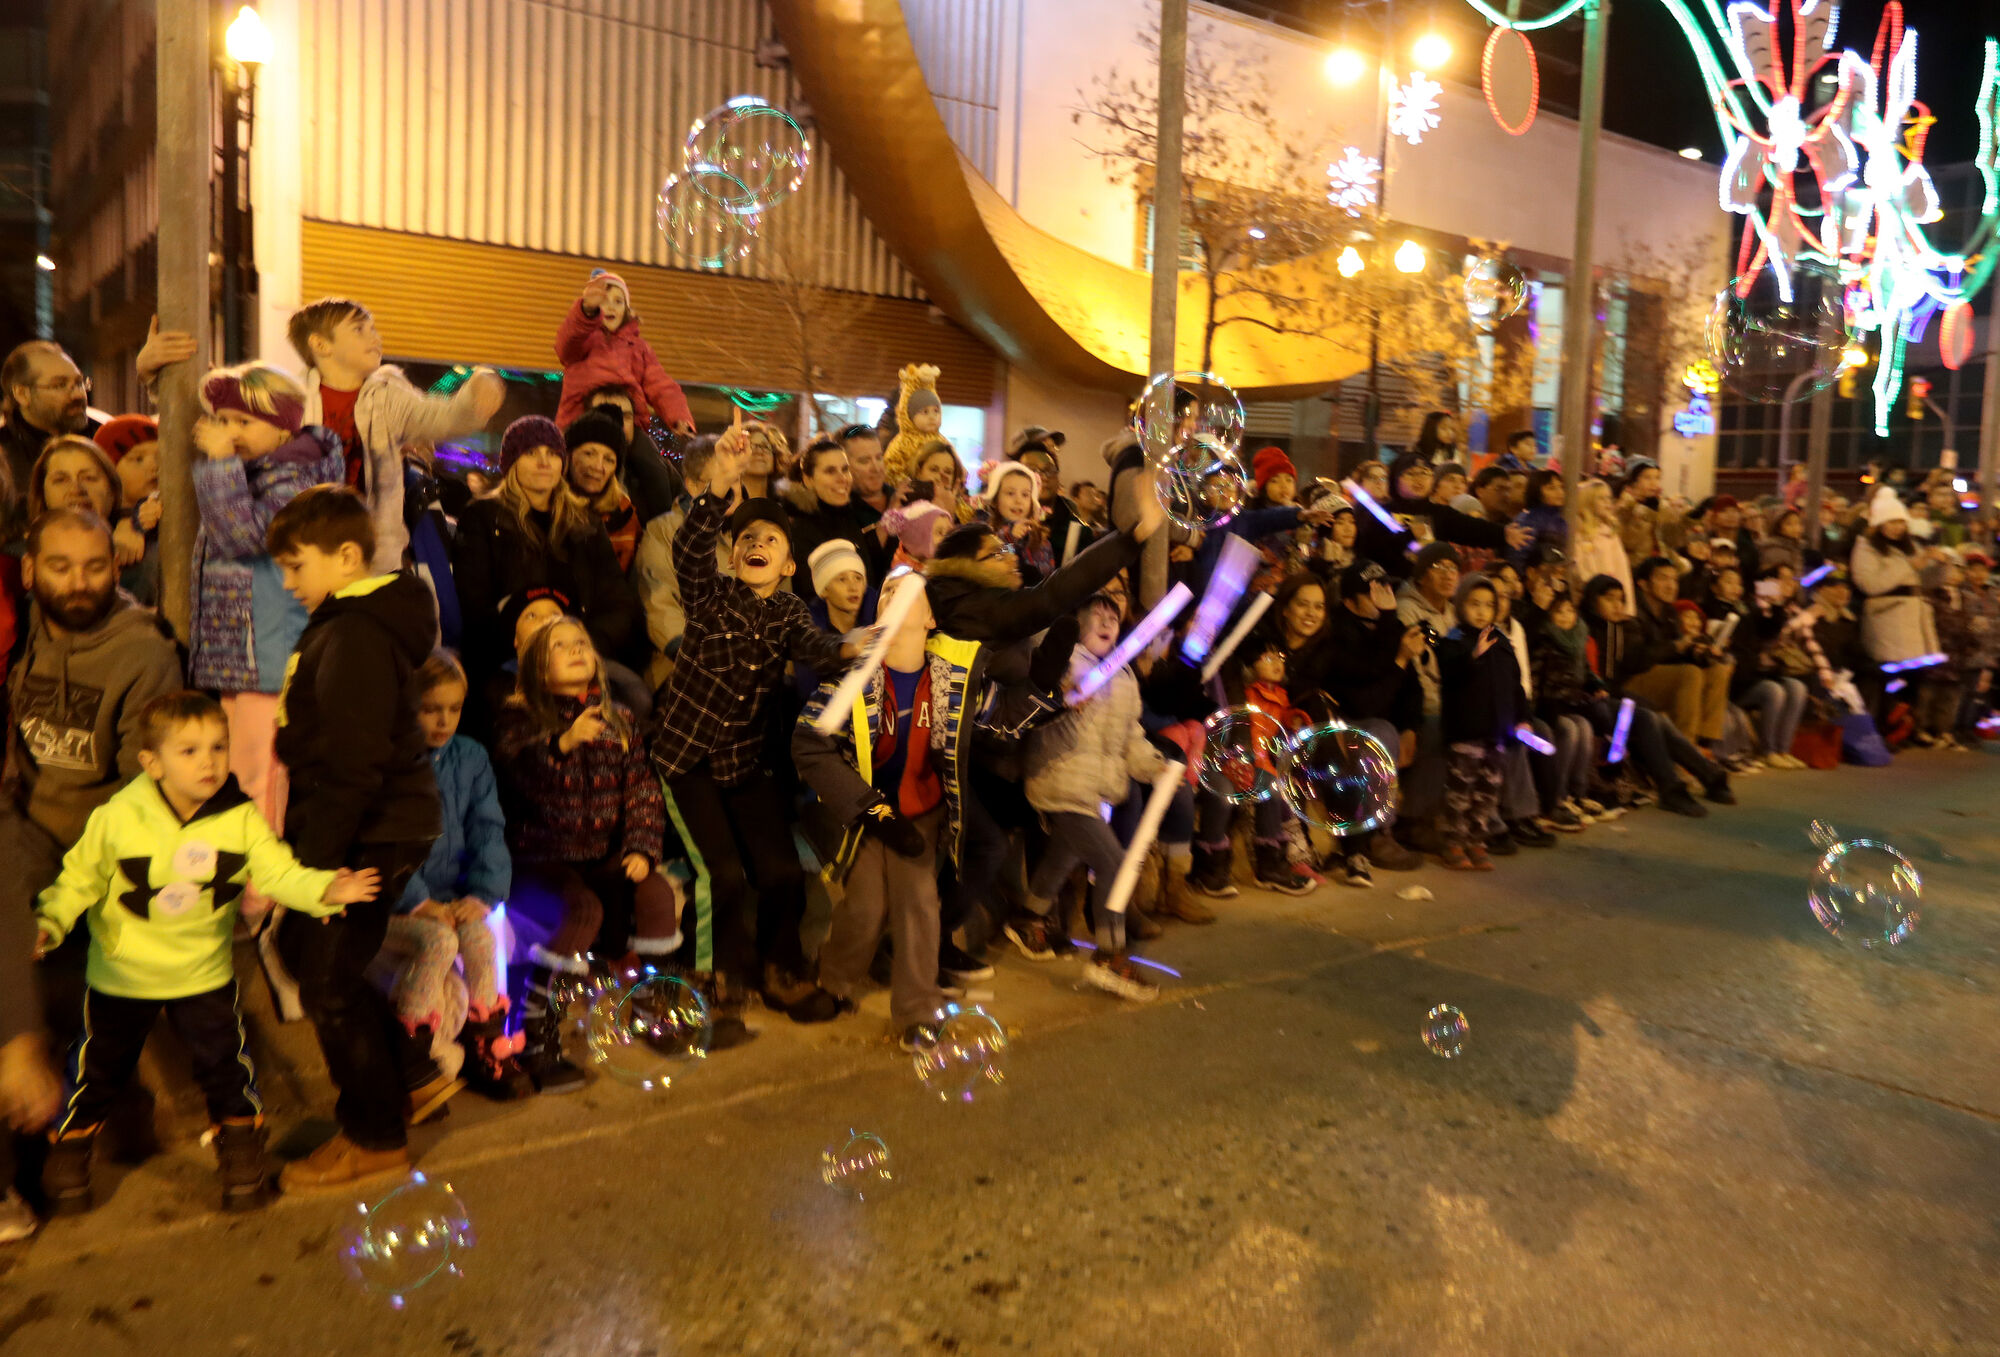 TREVOR HAGAN / WINNIPEG FRESS PRESS FILES Bubbles from the Kickin' Up Kountry float were popular during the Santa Claus Parade in 2016.